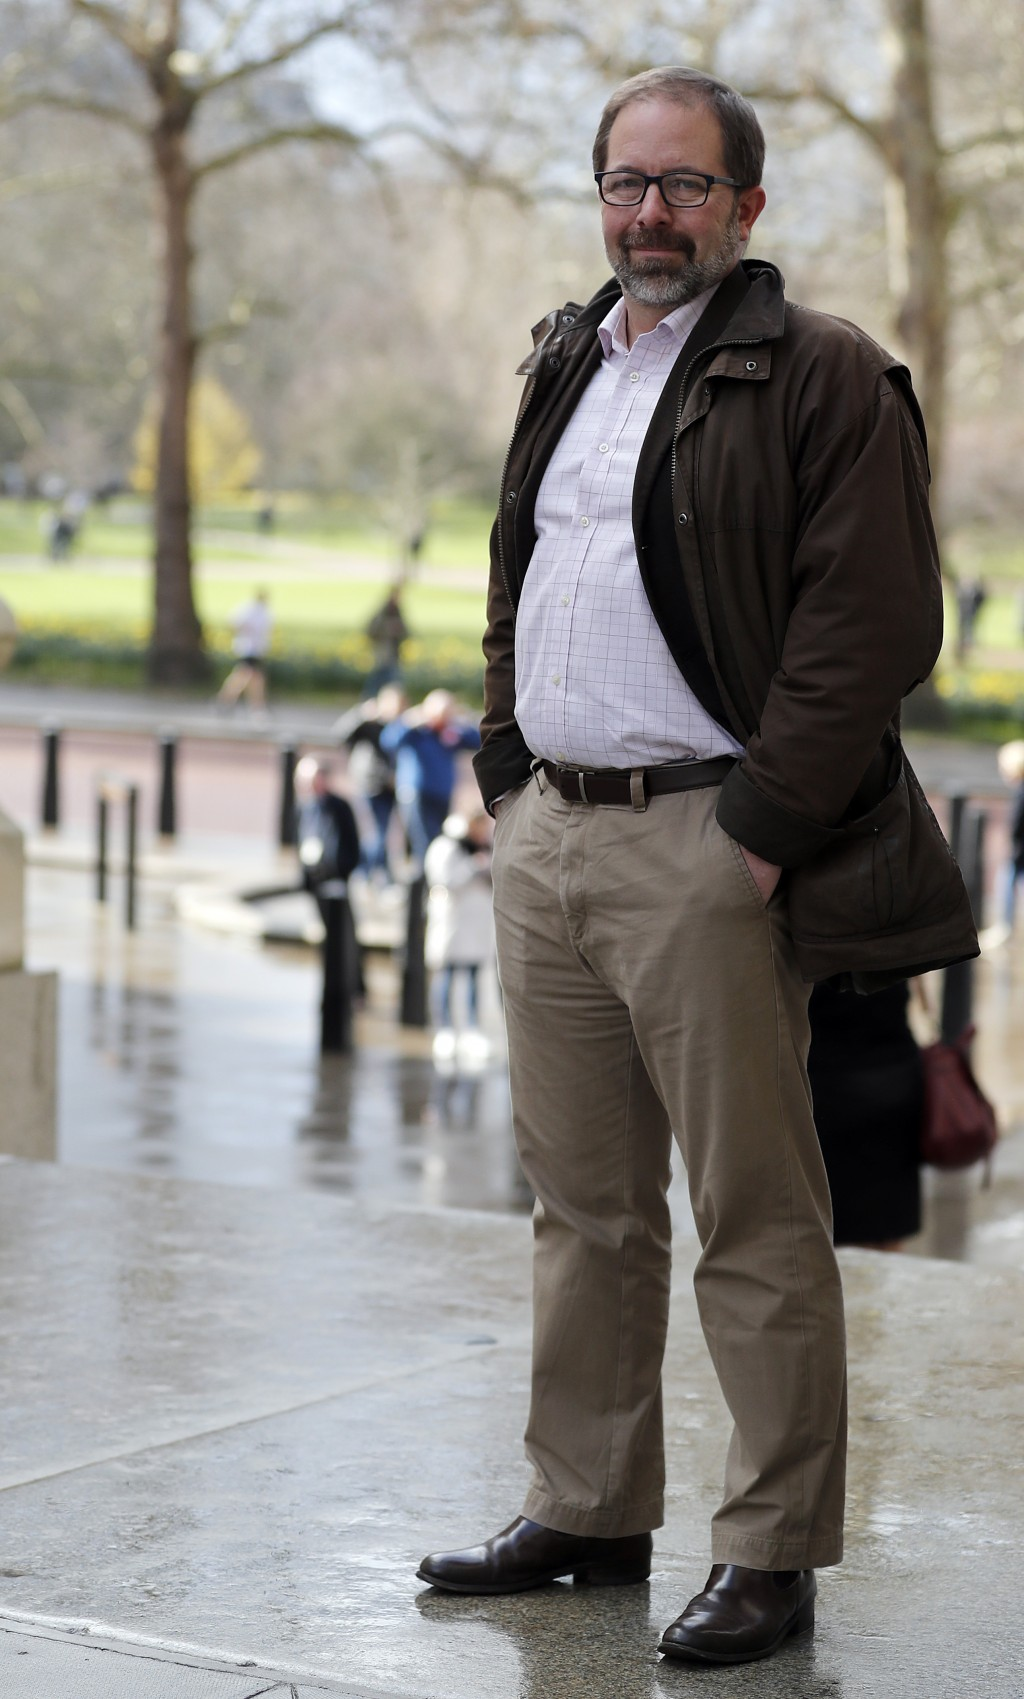 Keir Giles, a Russia specialist with Britain's Chatham House think tank, poses for a photo in central London on Thursday, Feb. 28, 2019. Giles was one